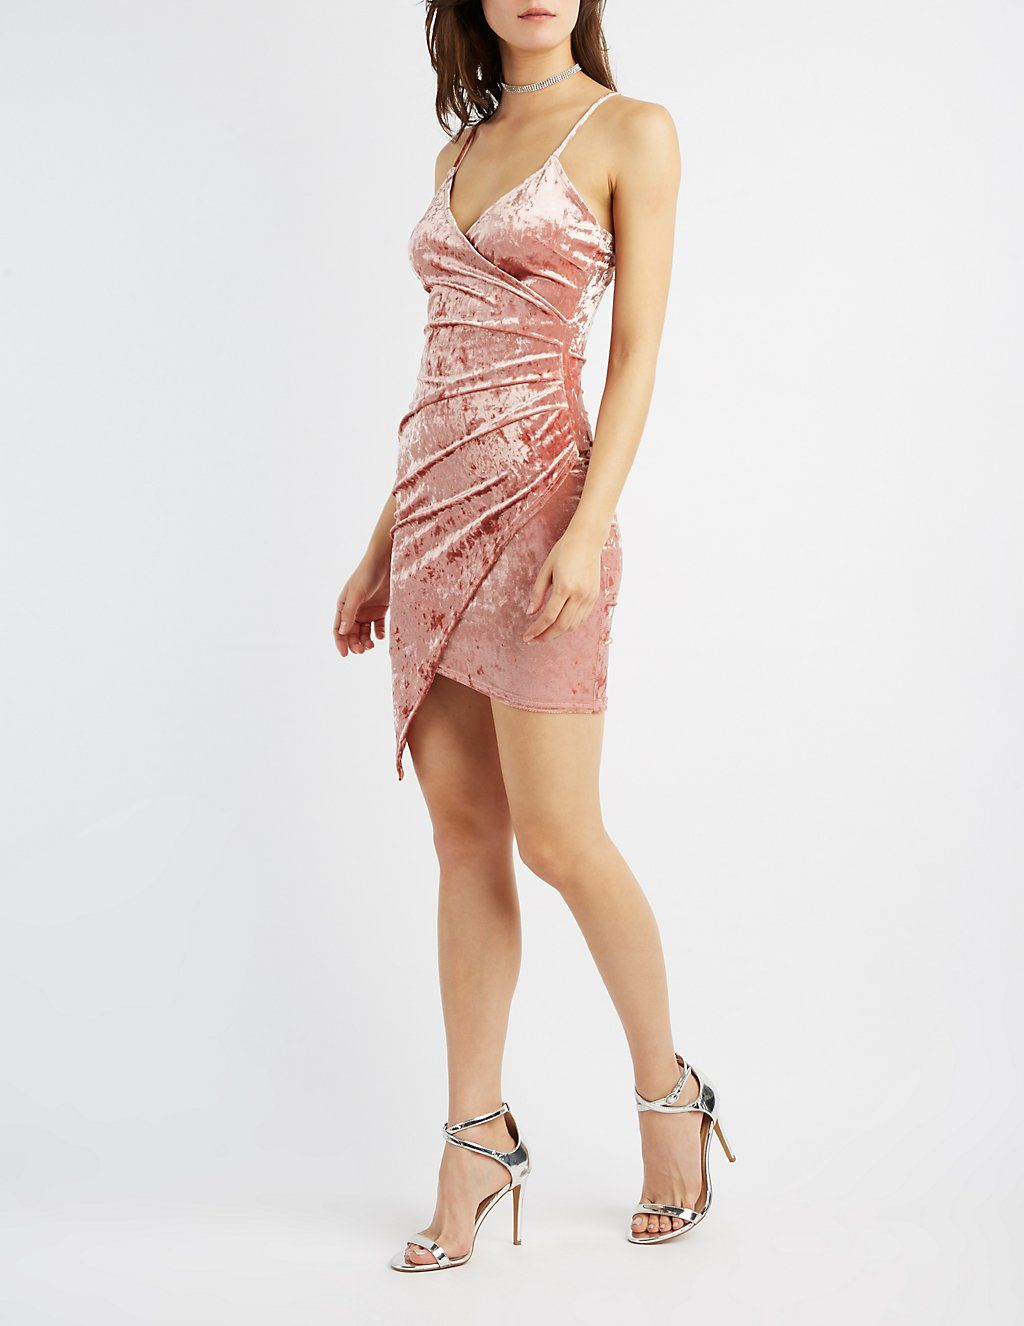 Crushed Velvet Wrap Dress   Charlotte Russe   Cute Outfits   Pinterest